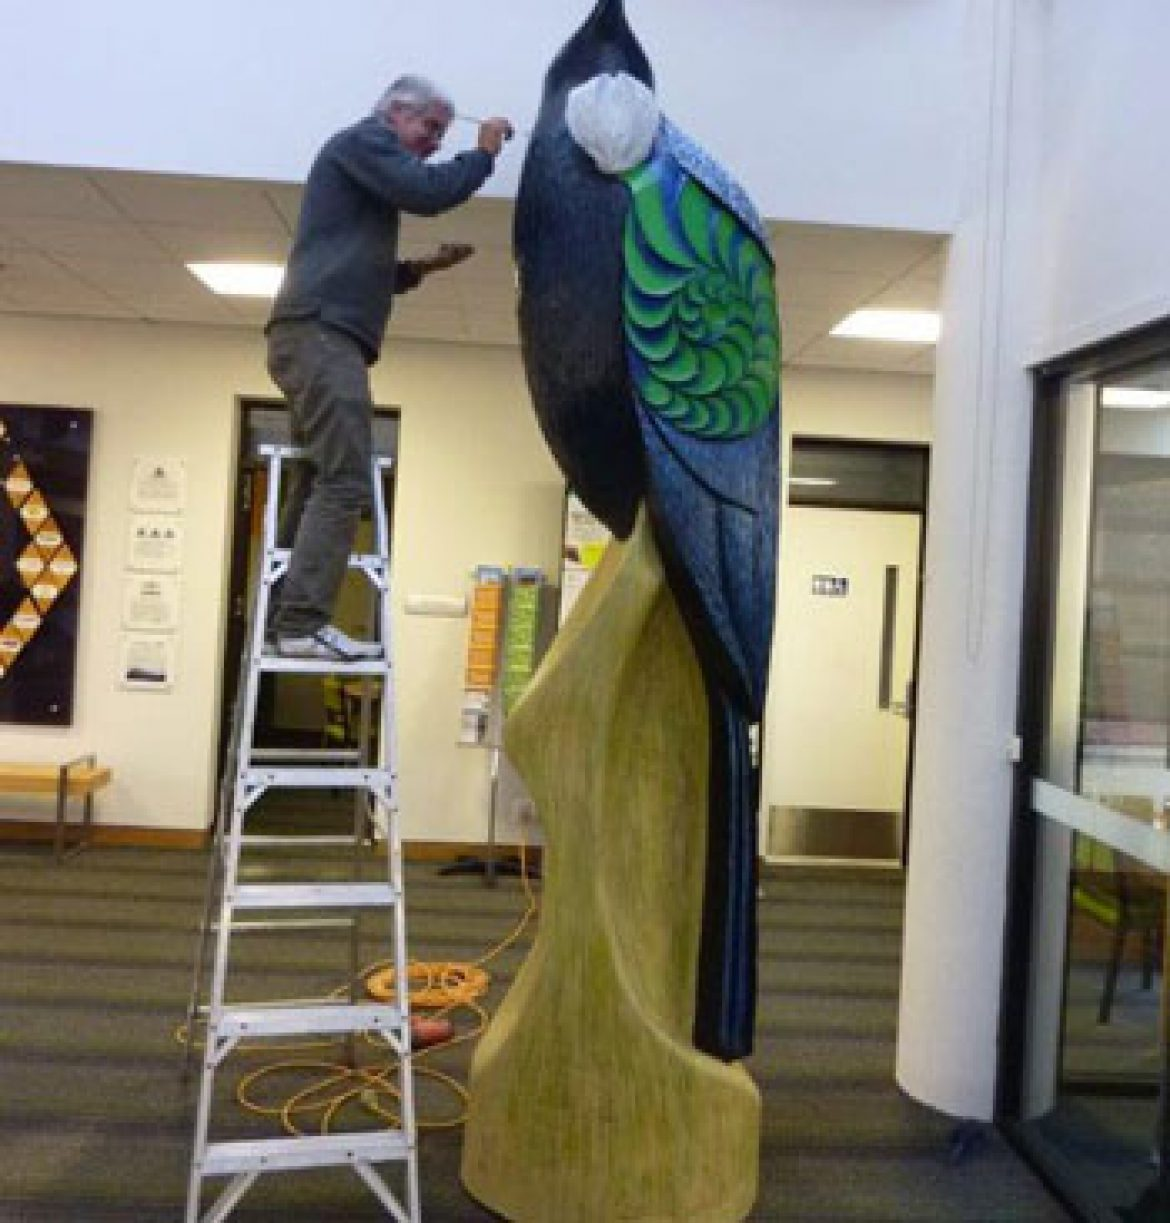 Tui at the Rotorua District Council